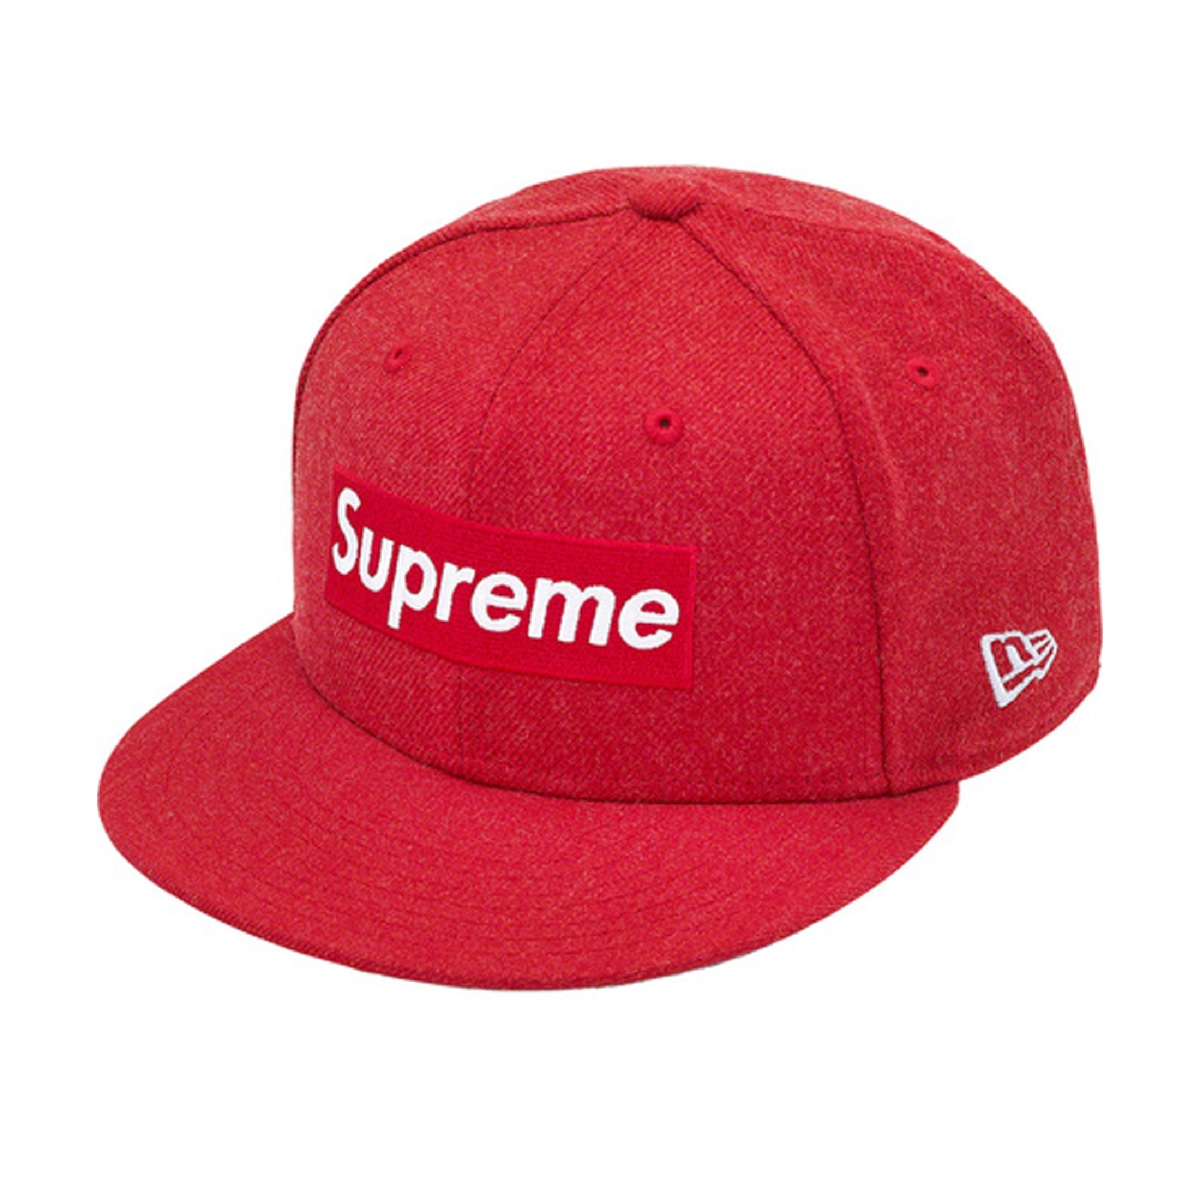 Supreme World Famous Box Logo New Era Red